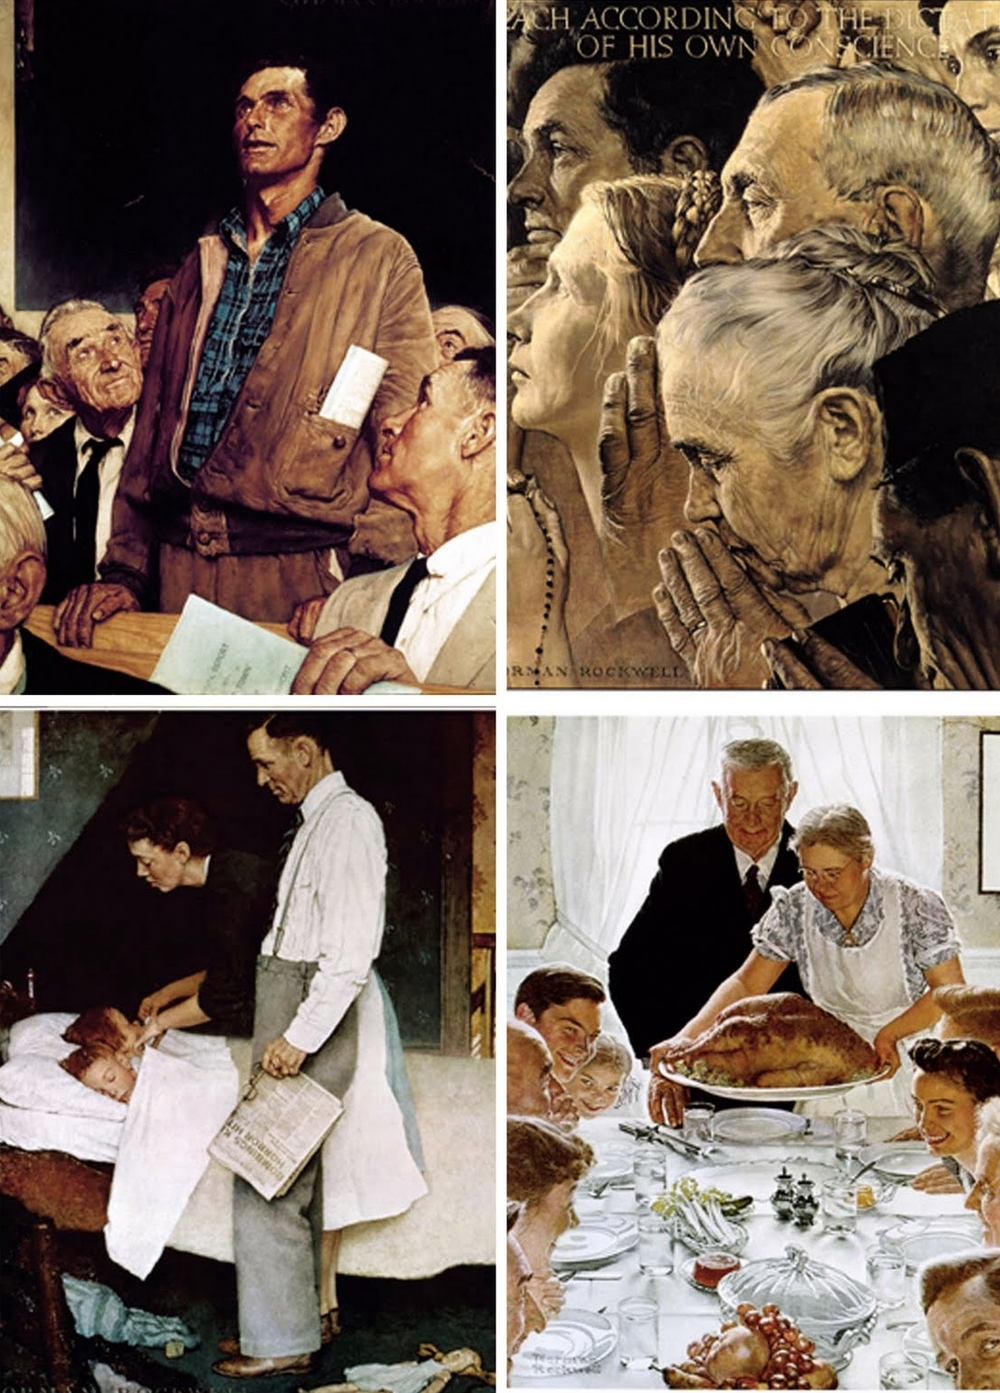 The Four Freedoms, Norman Rockwell